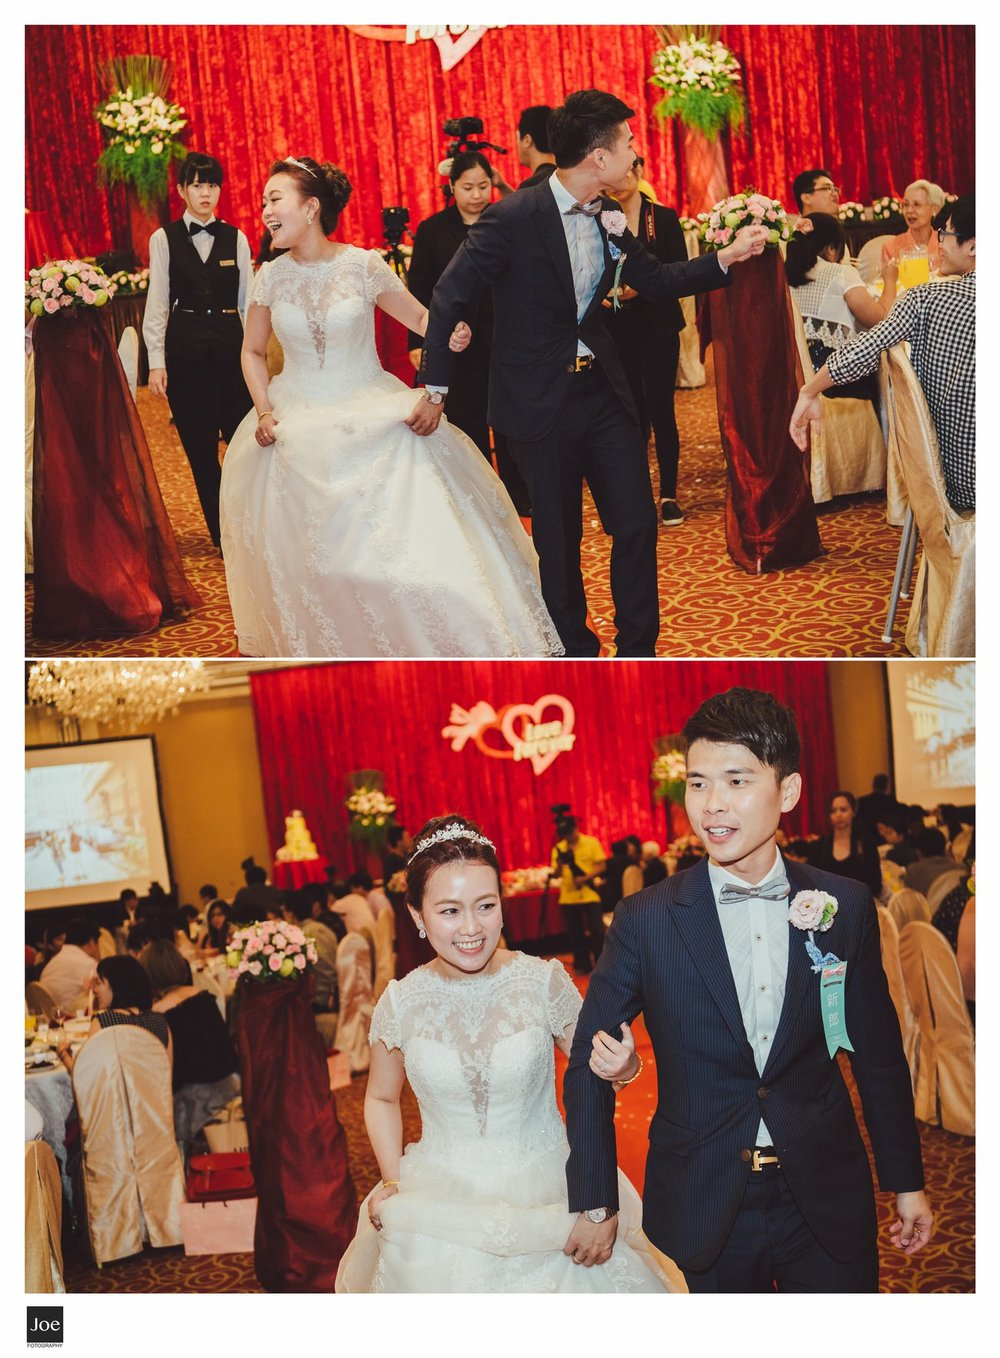 sunworld-dynasty-hotel-taipei-wedding-photo-joe-fotography-angel-jay-091.jpg